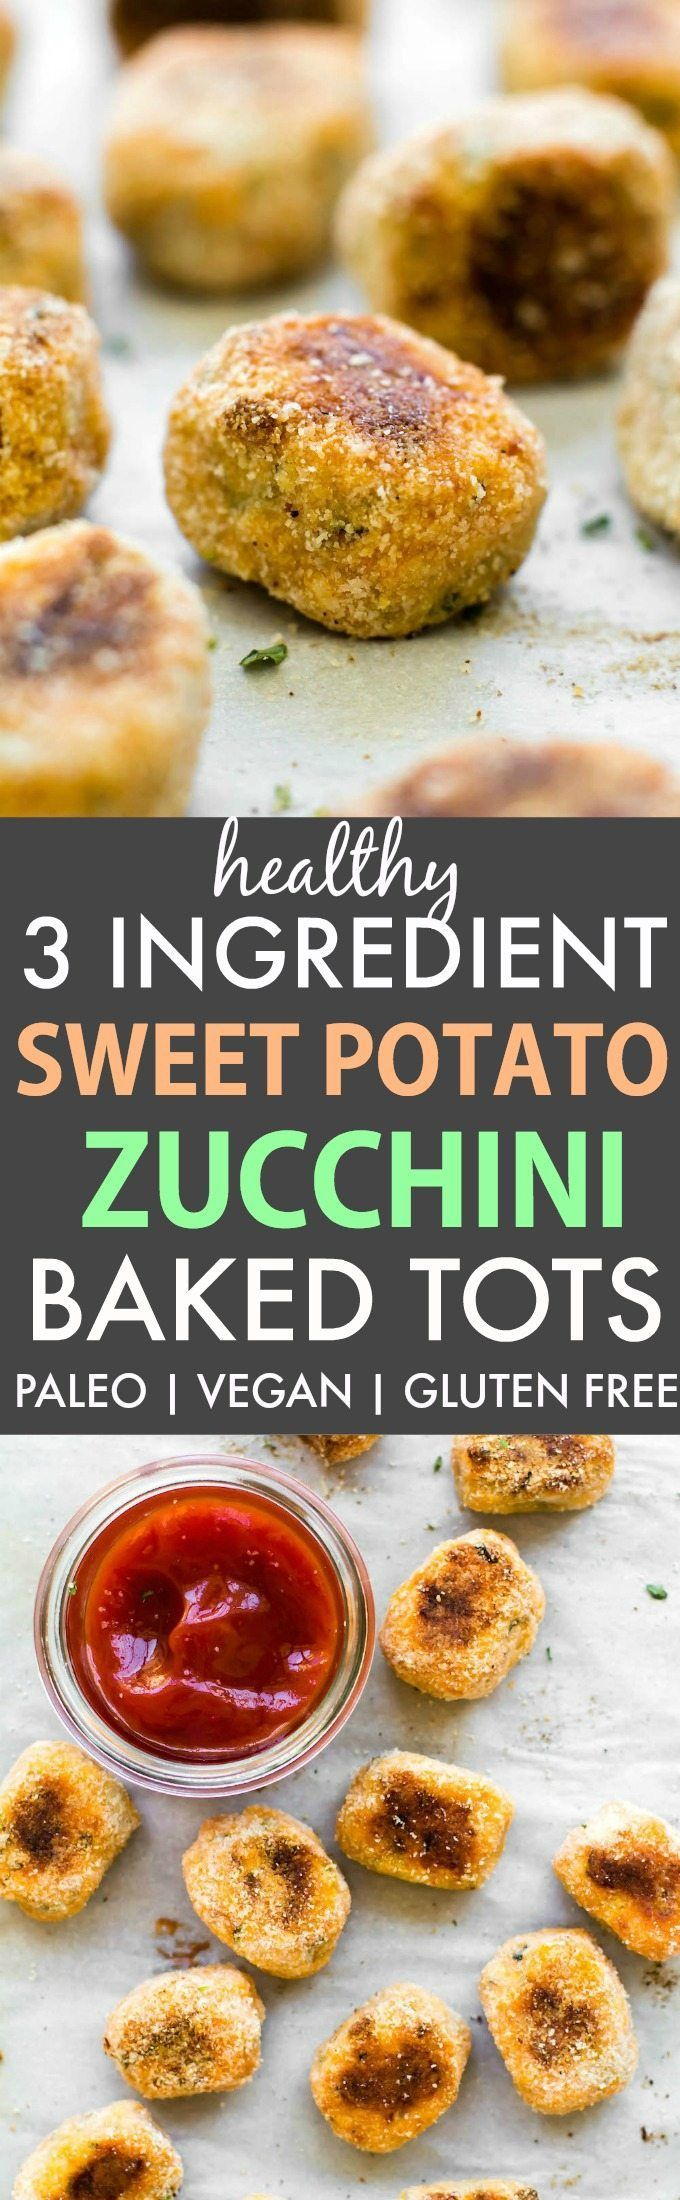 Healthy 3 Ingredient Baked Sweet Potato Zucchini Tots (Paleo, Vegan, Gluten Free)- Easy, oil-free and crispy baked tots loaded with veggies!